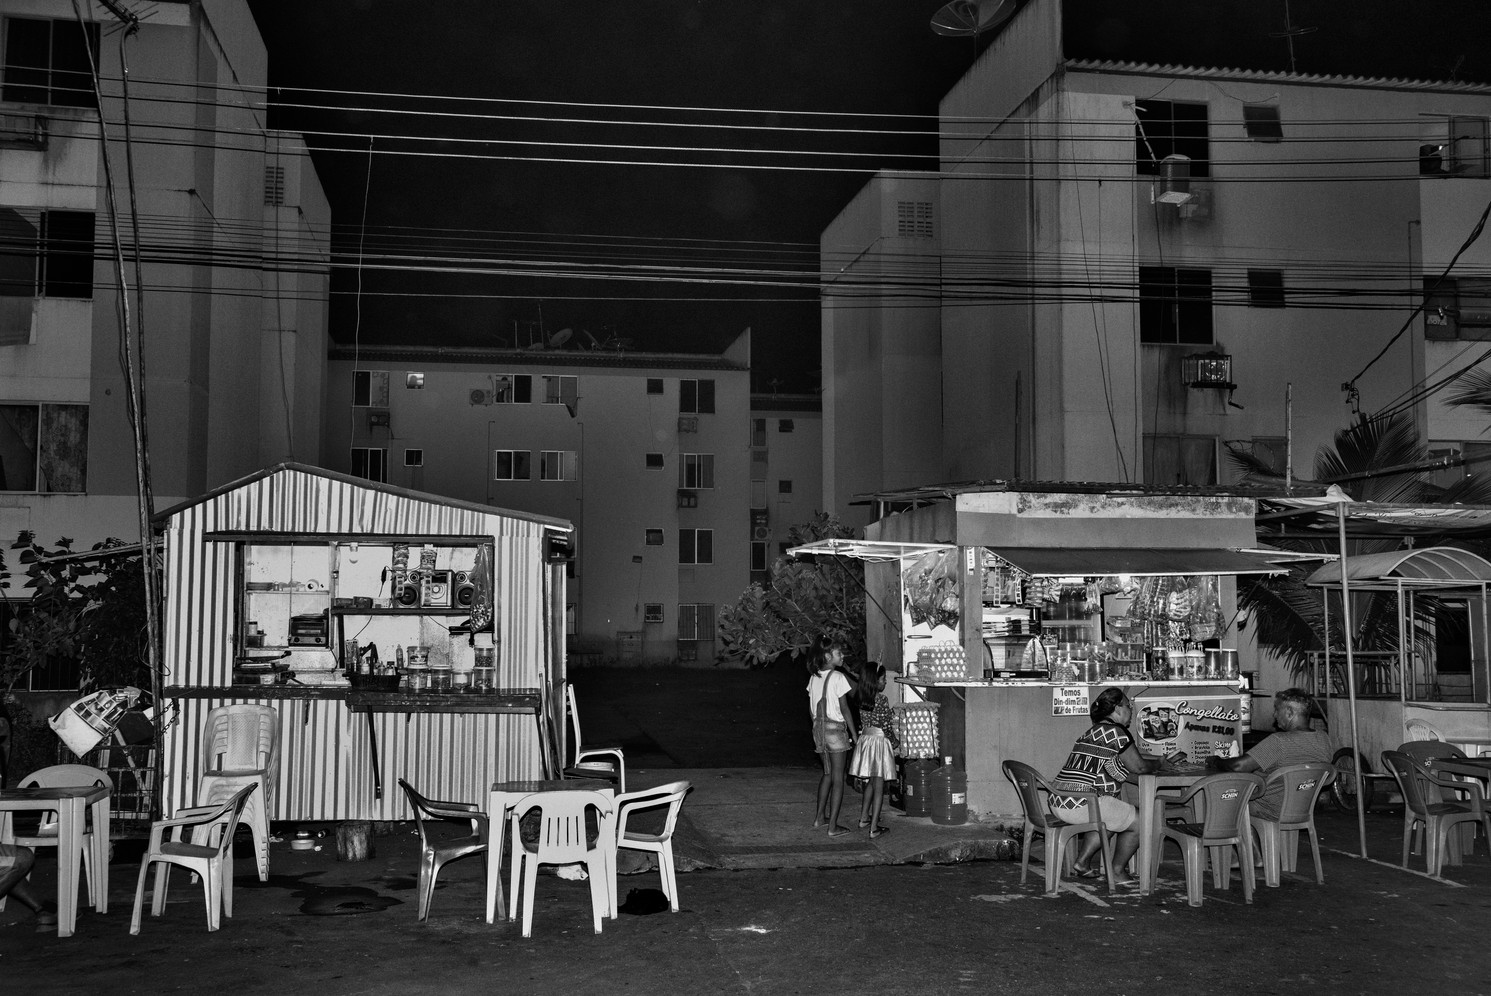 Residents enjoy evening snacks at kiosks at the Viver Melhor – Live Better - public housing complex in Manaus. Built with federal government funds and inaugurated in 2014 it's the largest public housing complex in Brazil. More than 55 thousand people live here. It's located on the far northern outskirts of the city, more than an hour's drive from downtown. Manaus' most powerful drug gang A Família do Norte – The Northern Family – controls security here as well all illegal activity.